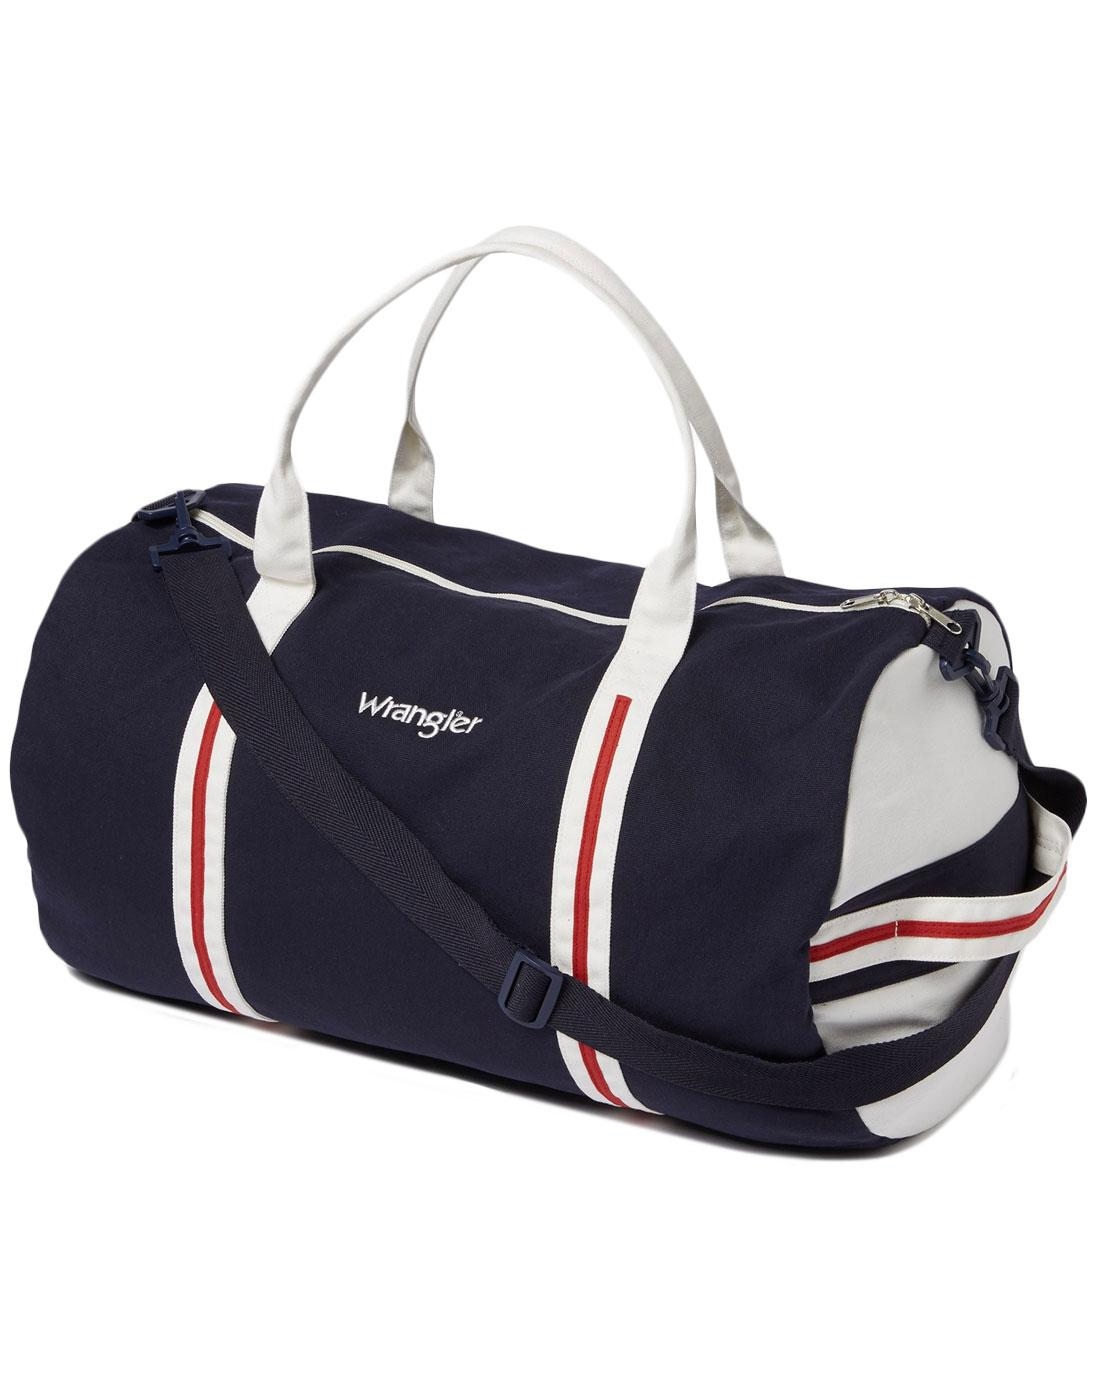 WRANGLER Retro 1970s Canvas Duffel Barrel Bag